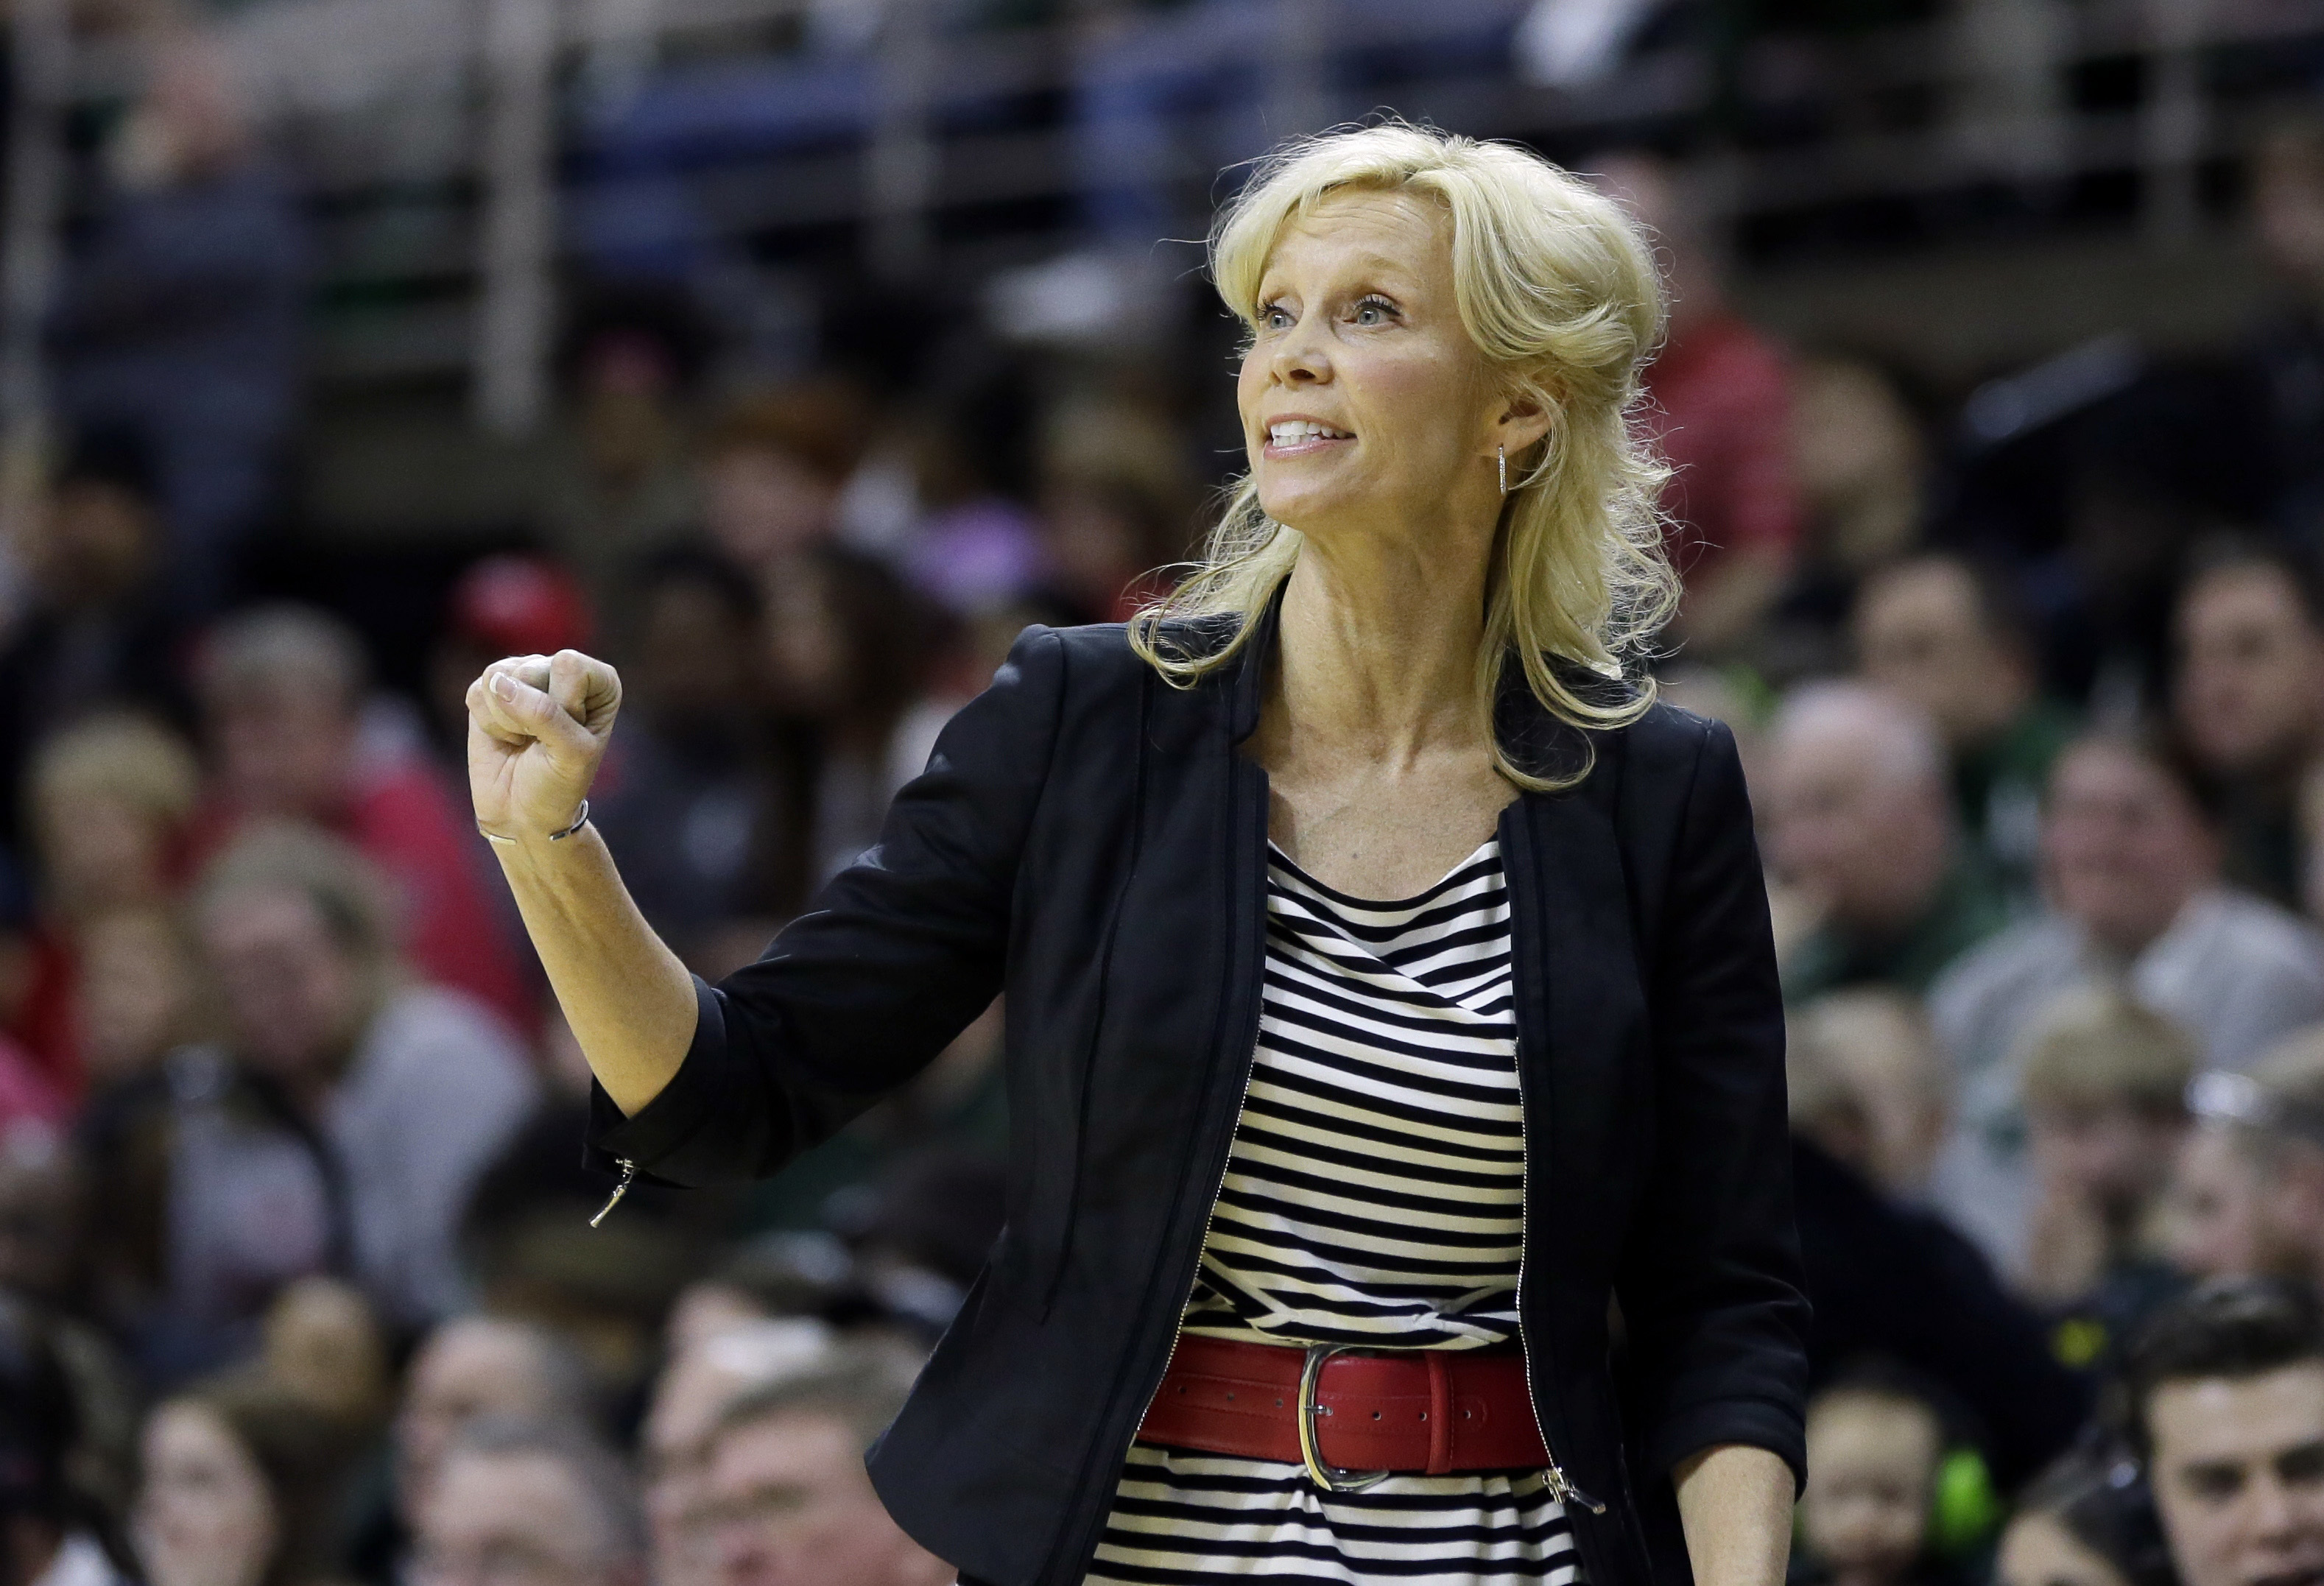 FILE- In this Feb. 27, 2016, file photo, Michigan State head coach Suzy Merchant gestures as she watches from the sidelines during the second half of an NCAA college basketball game against Ohio State in East Lansing, Mich. Merchant fainted while coaching